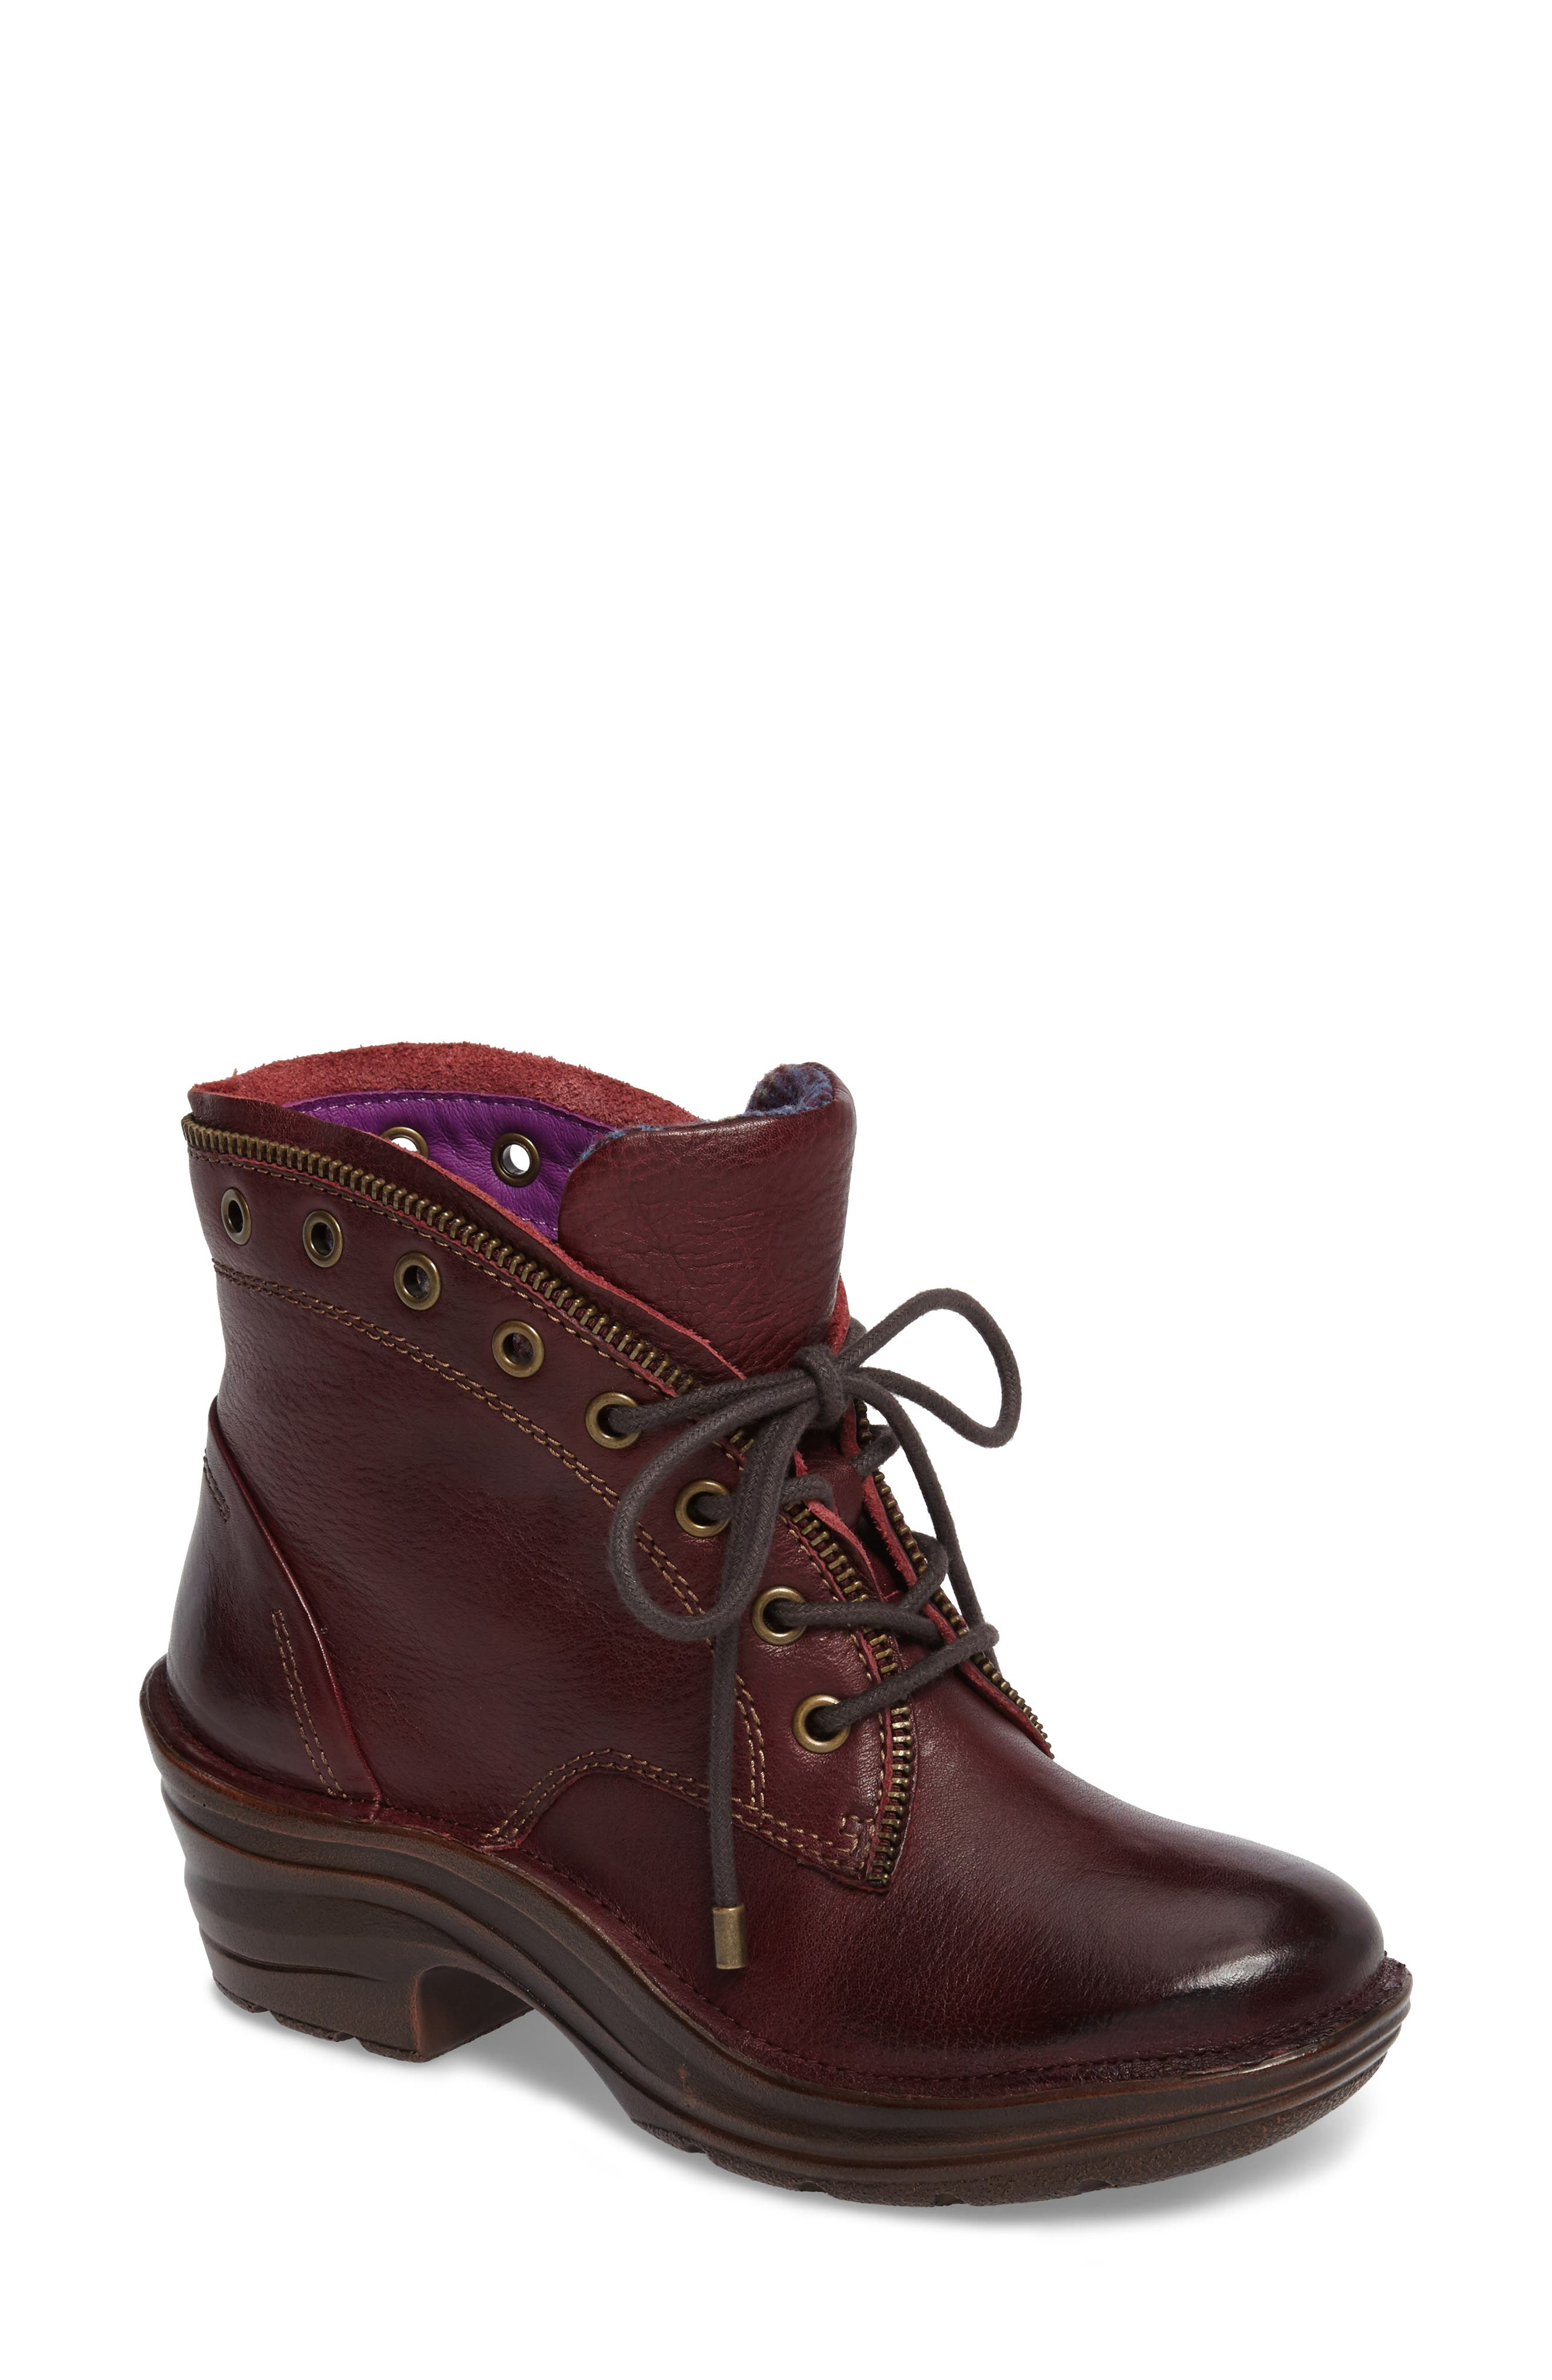 Rangely Boot,                             Main thumbnail 1, color,                             Marsala Red Leather